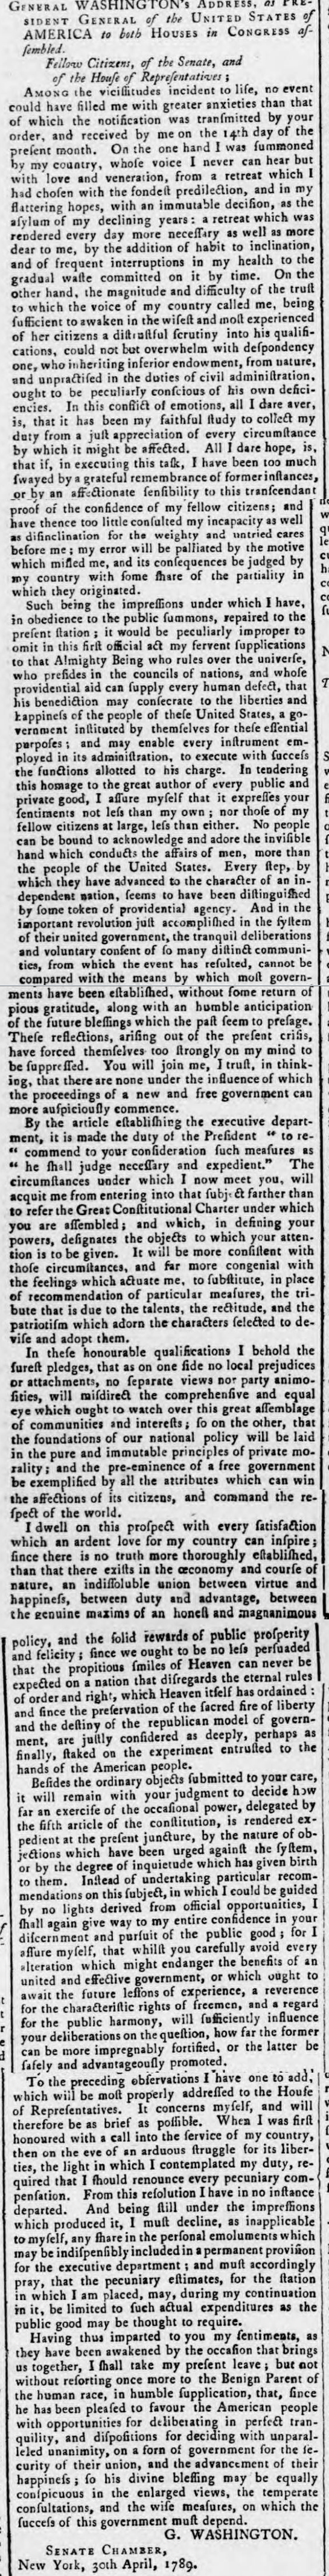 historical newspaper story about the inauguration of george washington